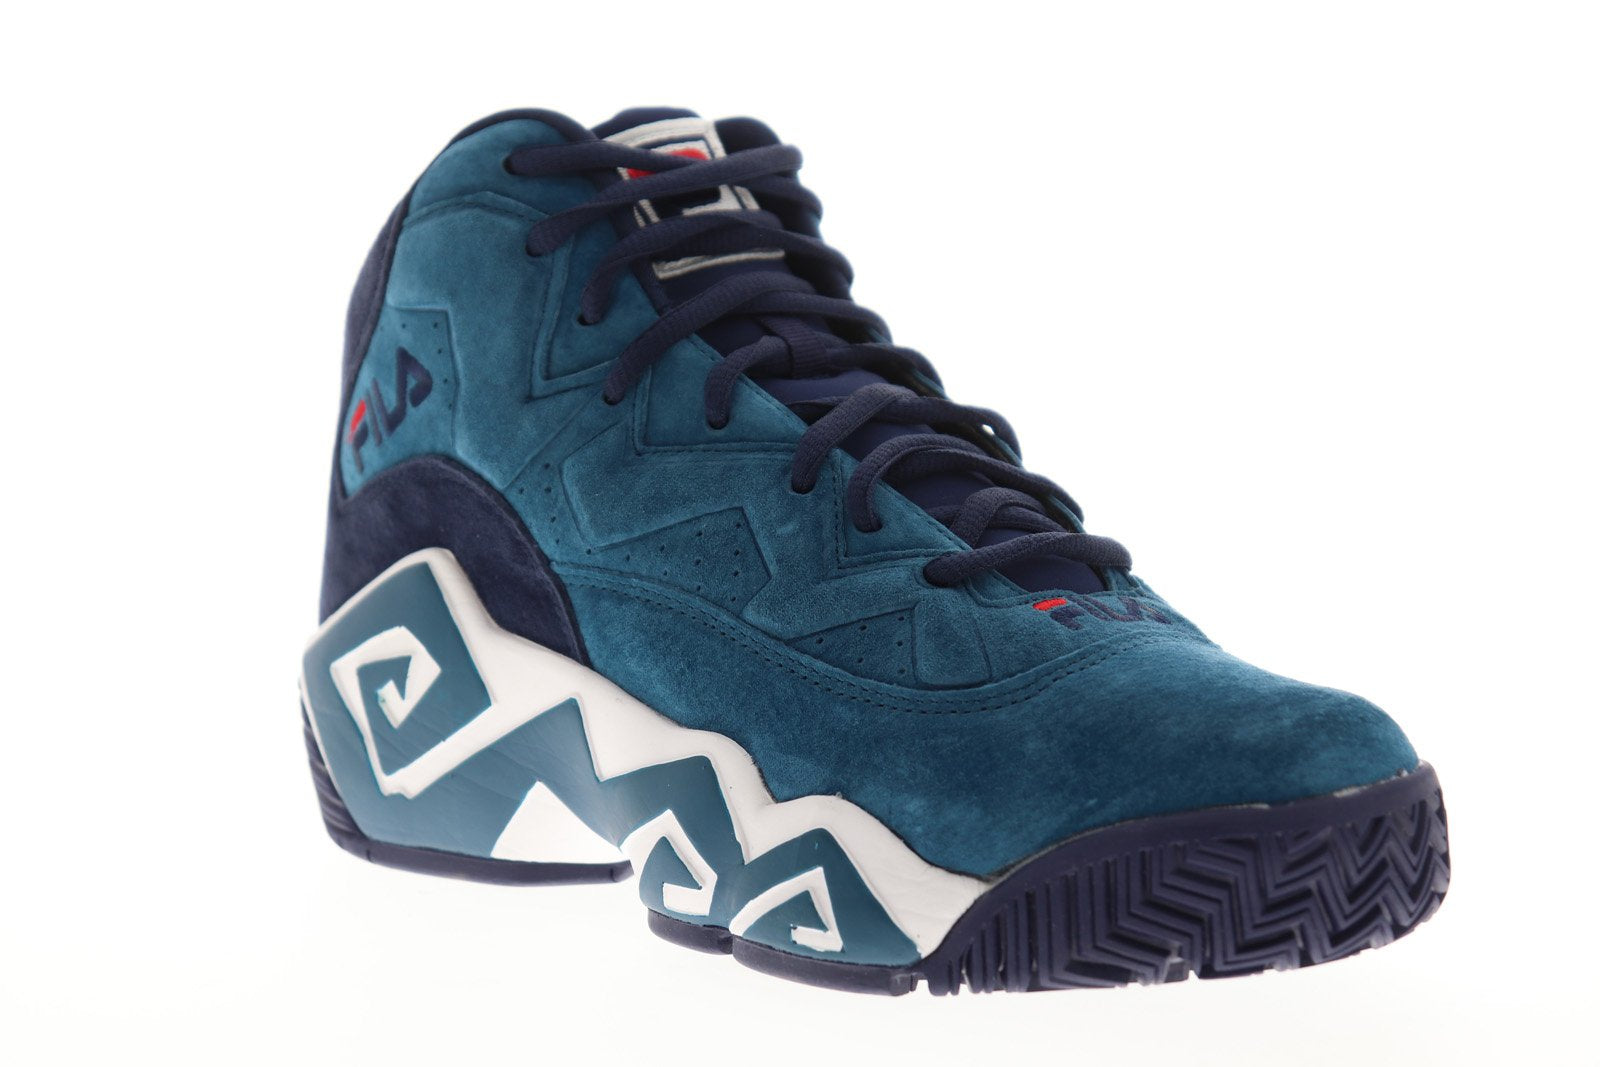 Fila Mb 1BM00051 421 Mens Blue Suede Lace Up Athletic Gym Basketball Shoes